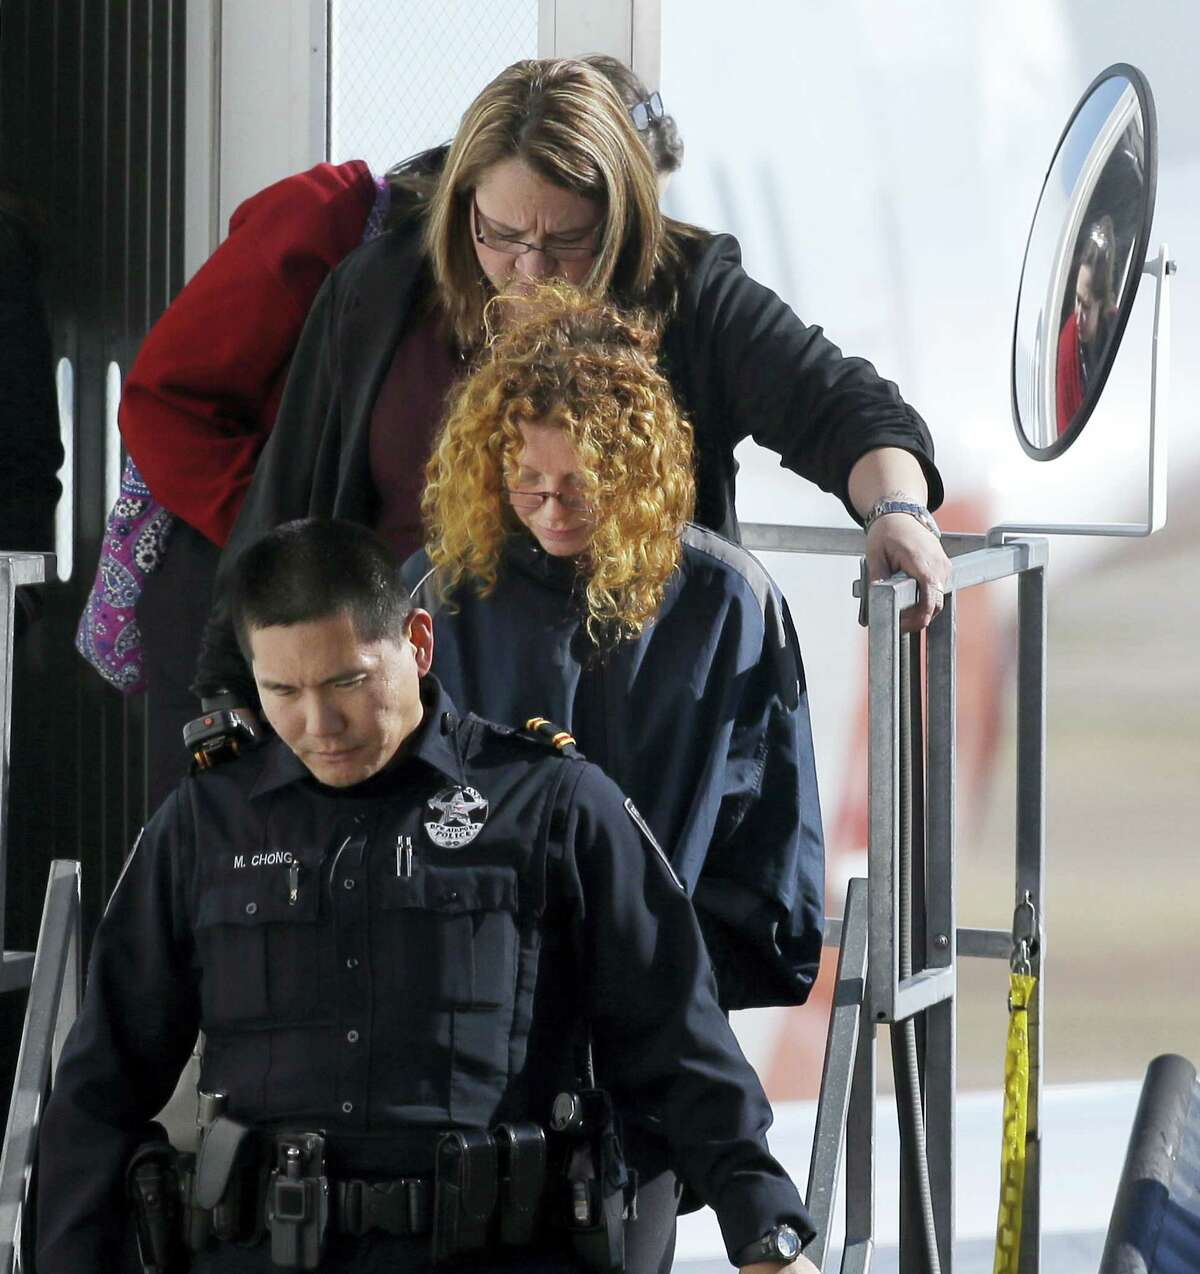 """Tonya Couch is escorted off a flight after her arrival to the Dallas/Fort Worth International Airport in Grapevine, Texas, Thursday, Jan. 7, 2016. Couch, mother of a fugitive teenager known for using an """"affluenza"""" defense in a deadly drunken-driving case, waived extradition and was sent to Texas from California to face a charge of hindering the apprehension of a felon."""